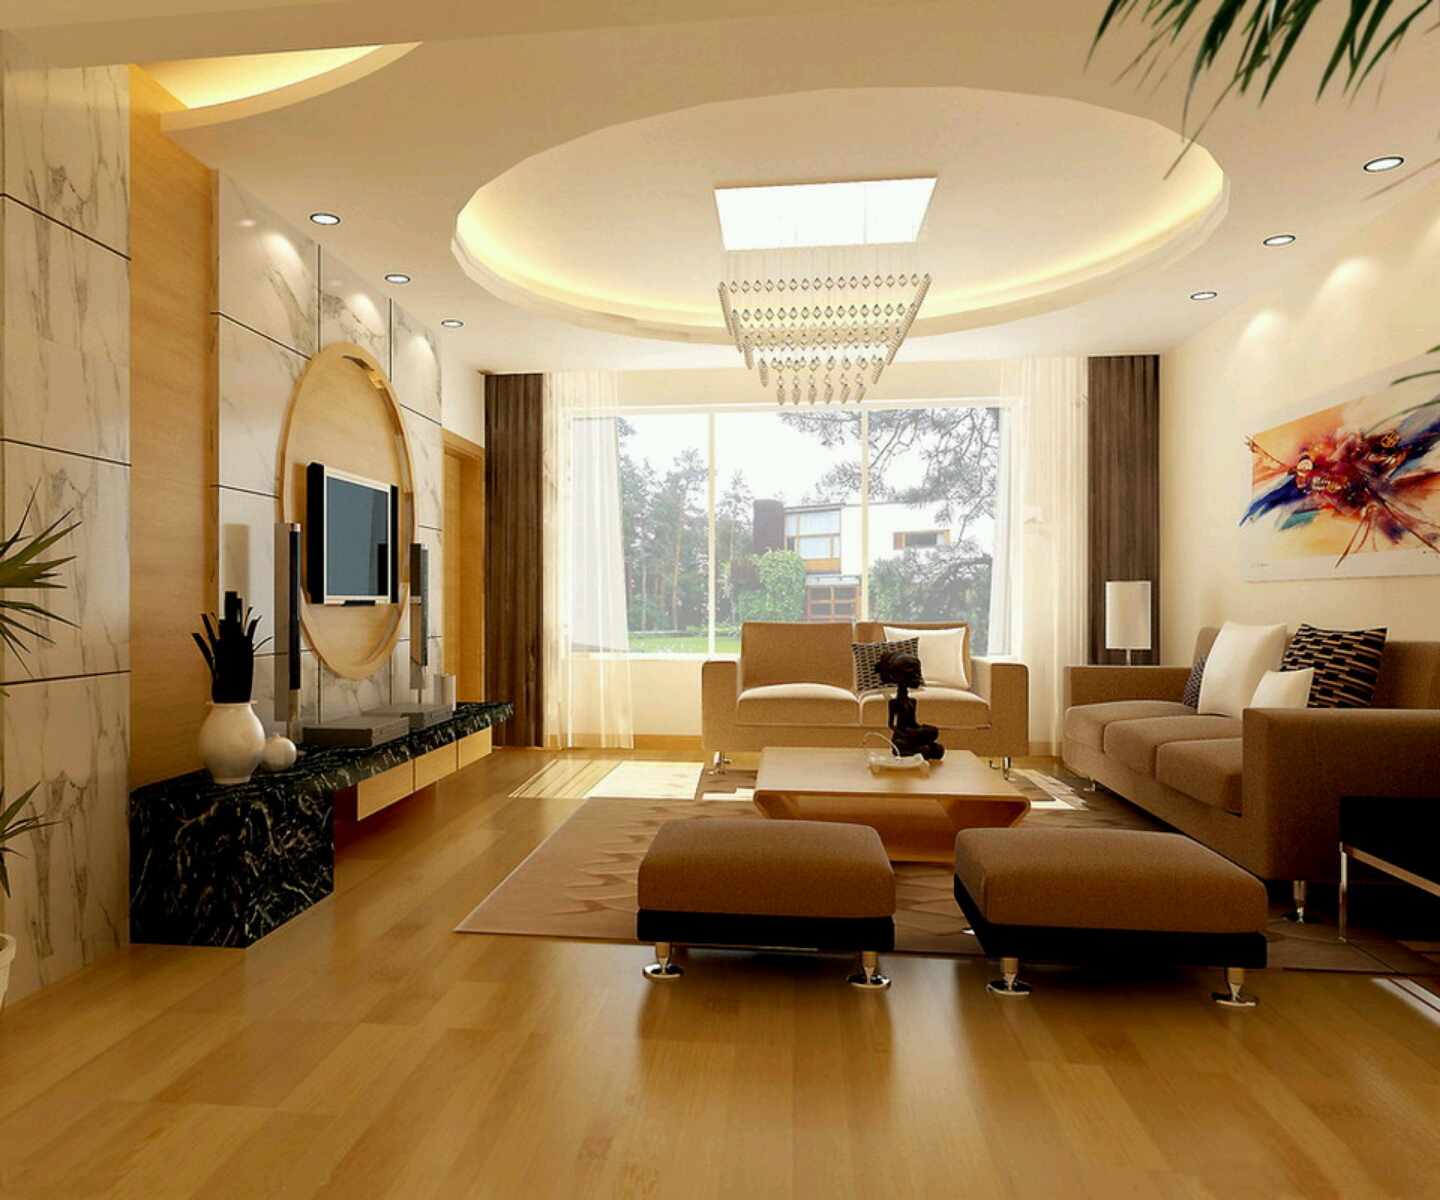 Modern interior decoration living rooms ceiling designs for Drawing room interior ideas